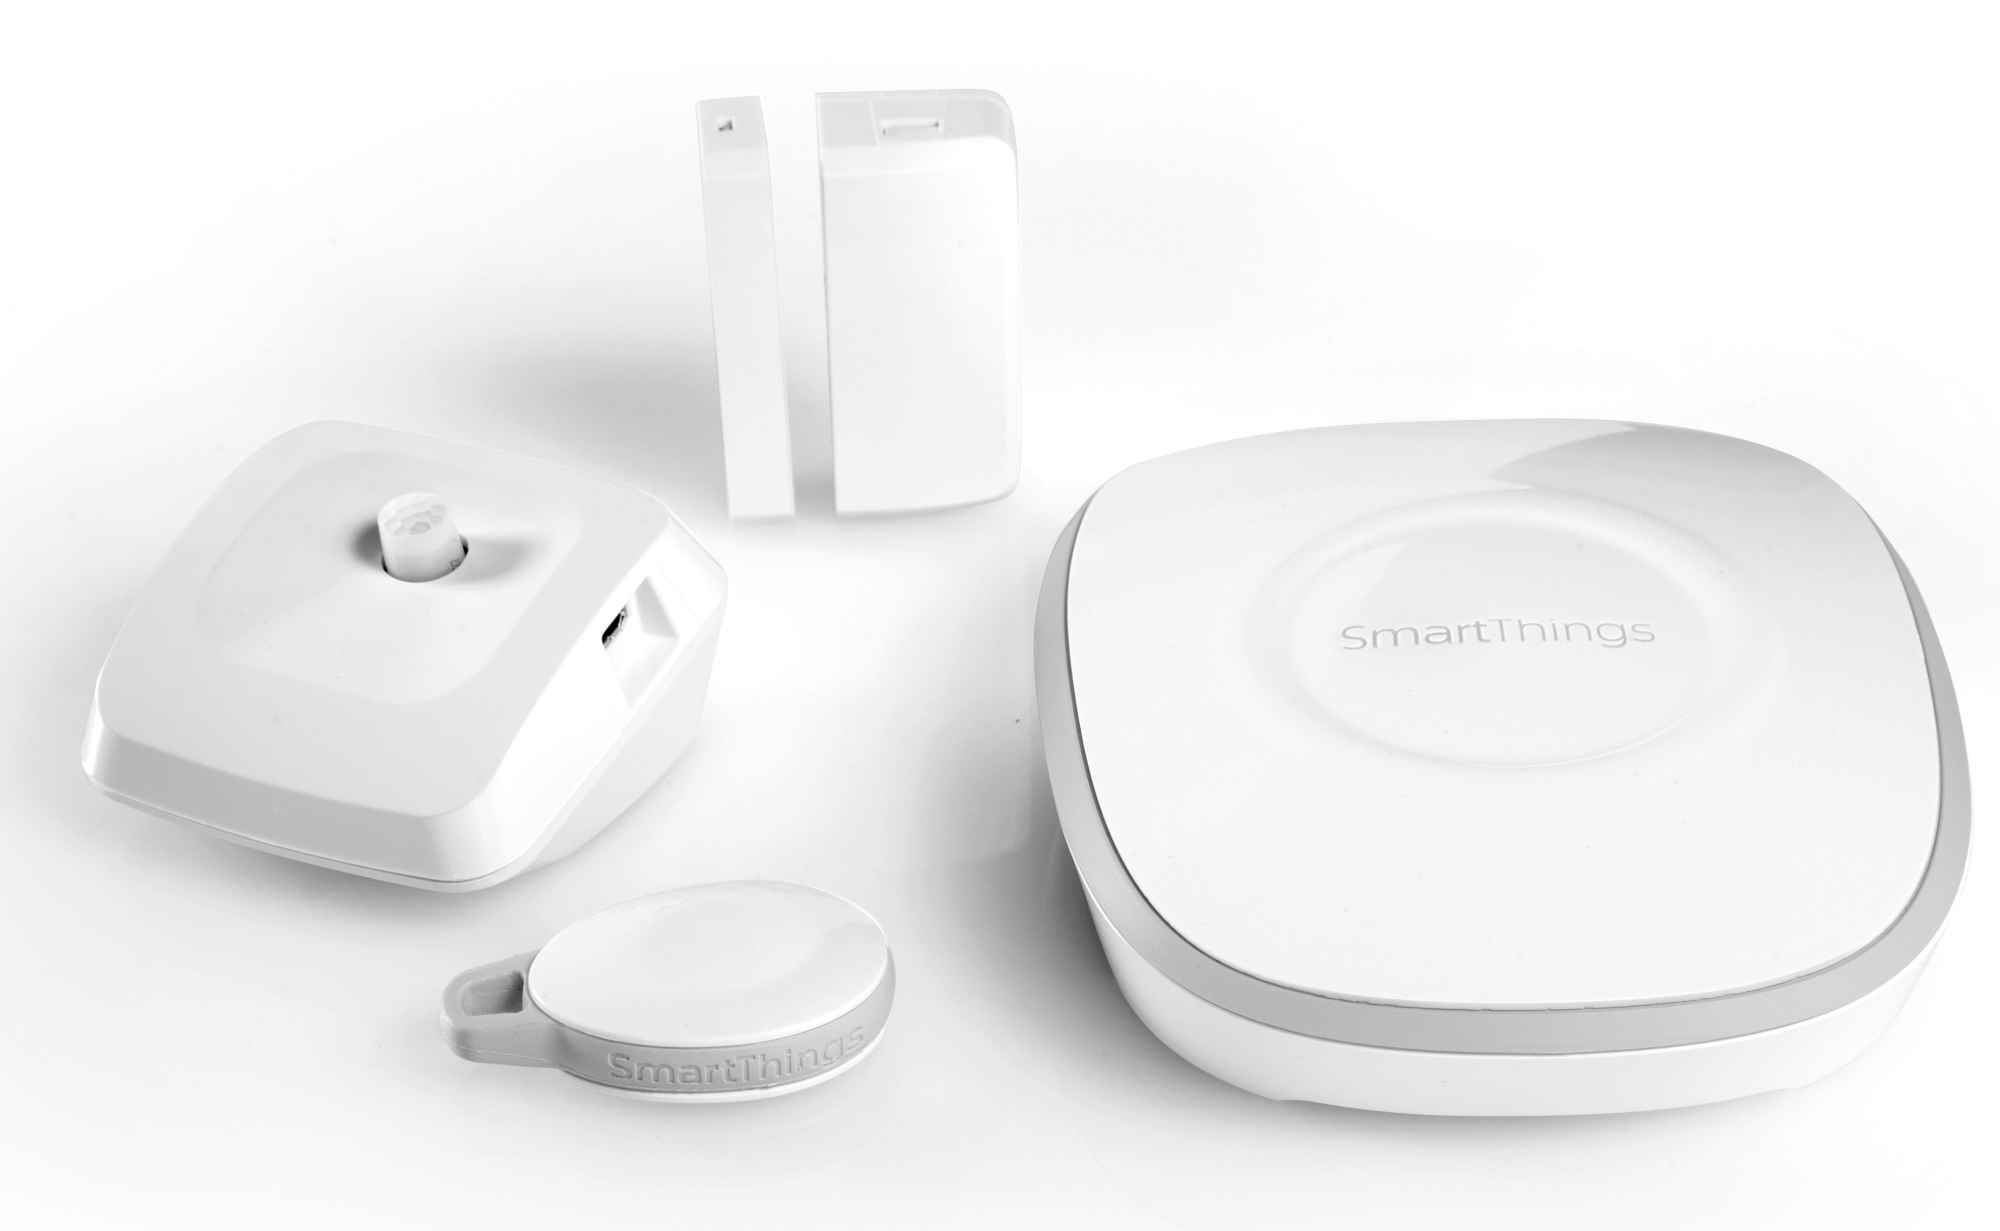 Samsung Set to Acquire Connected Home Firm SmartThings